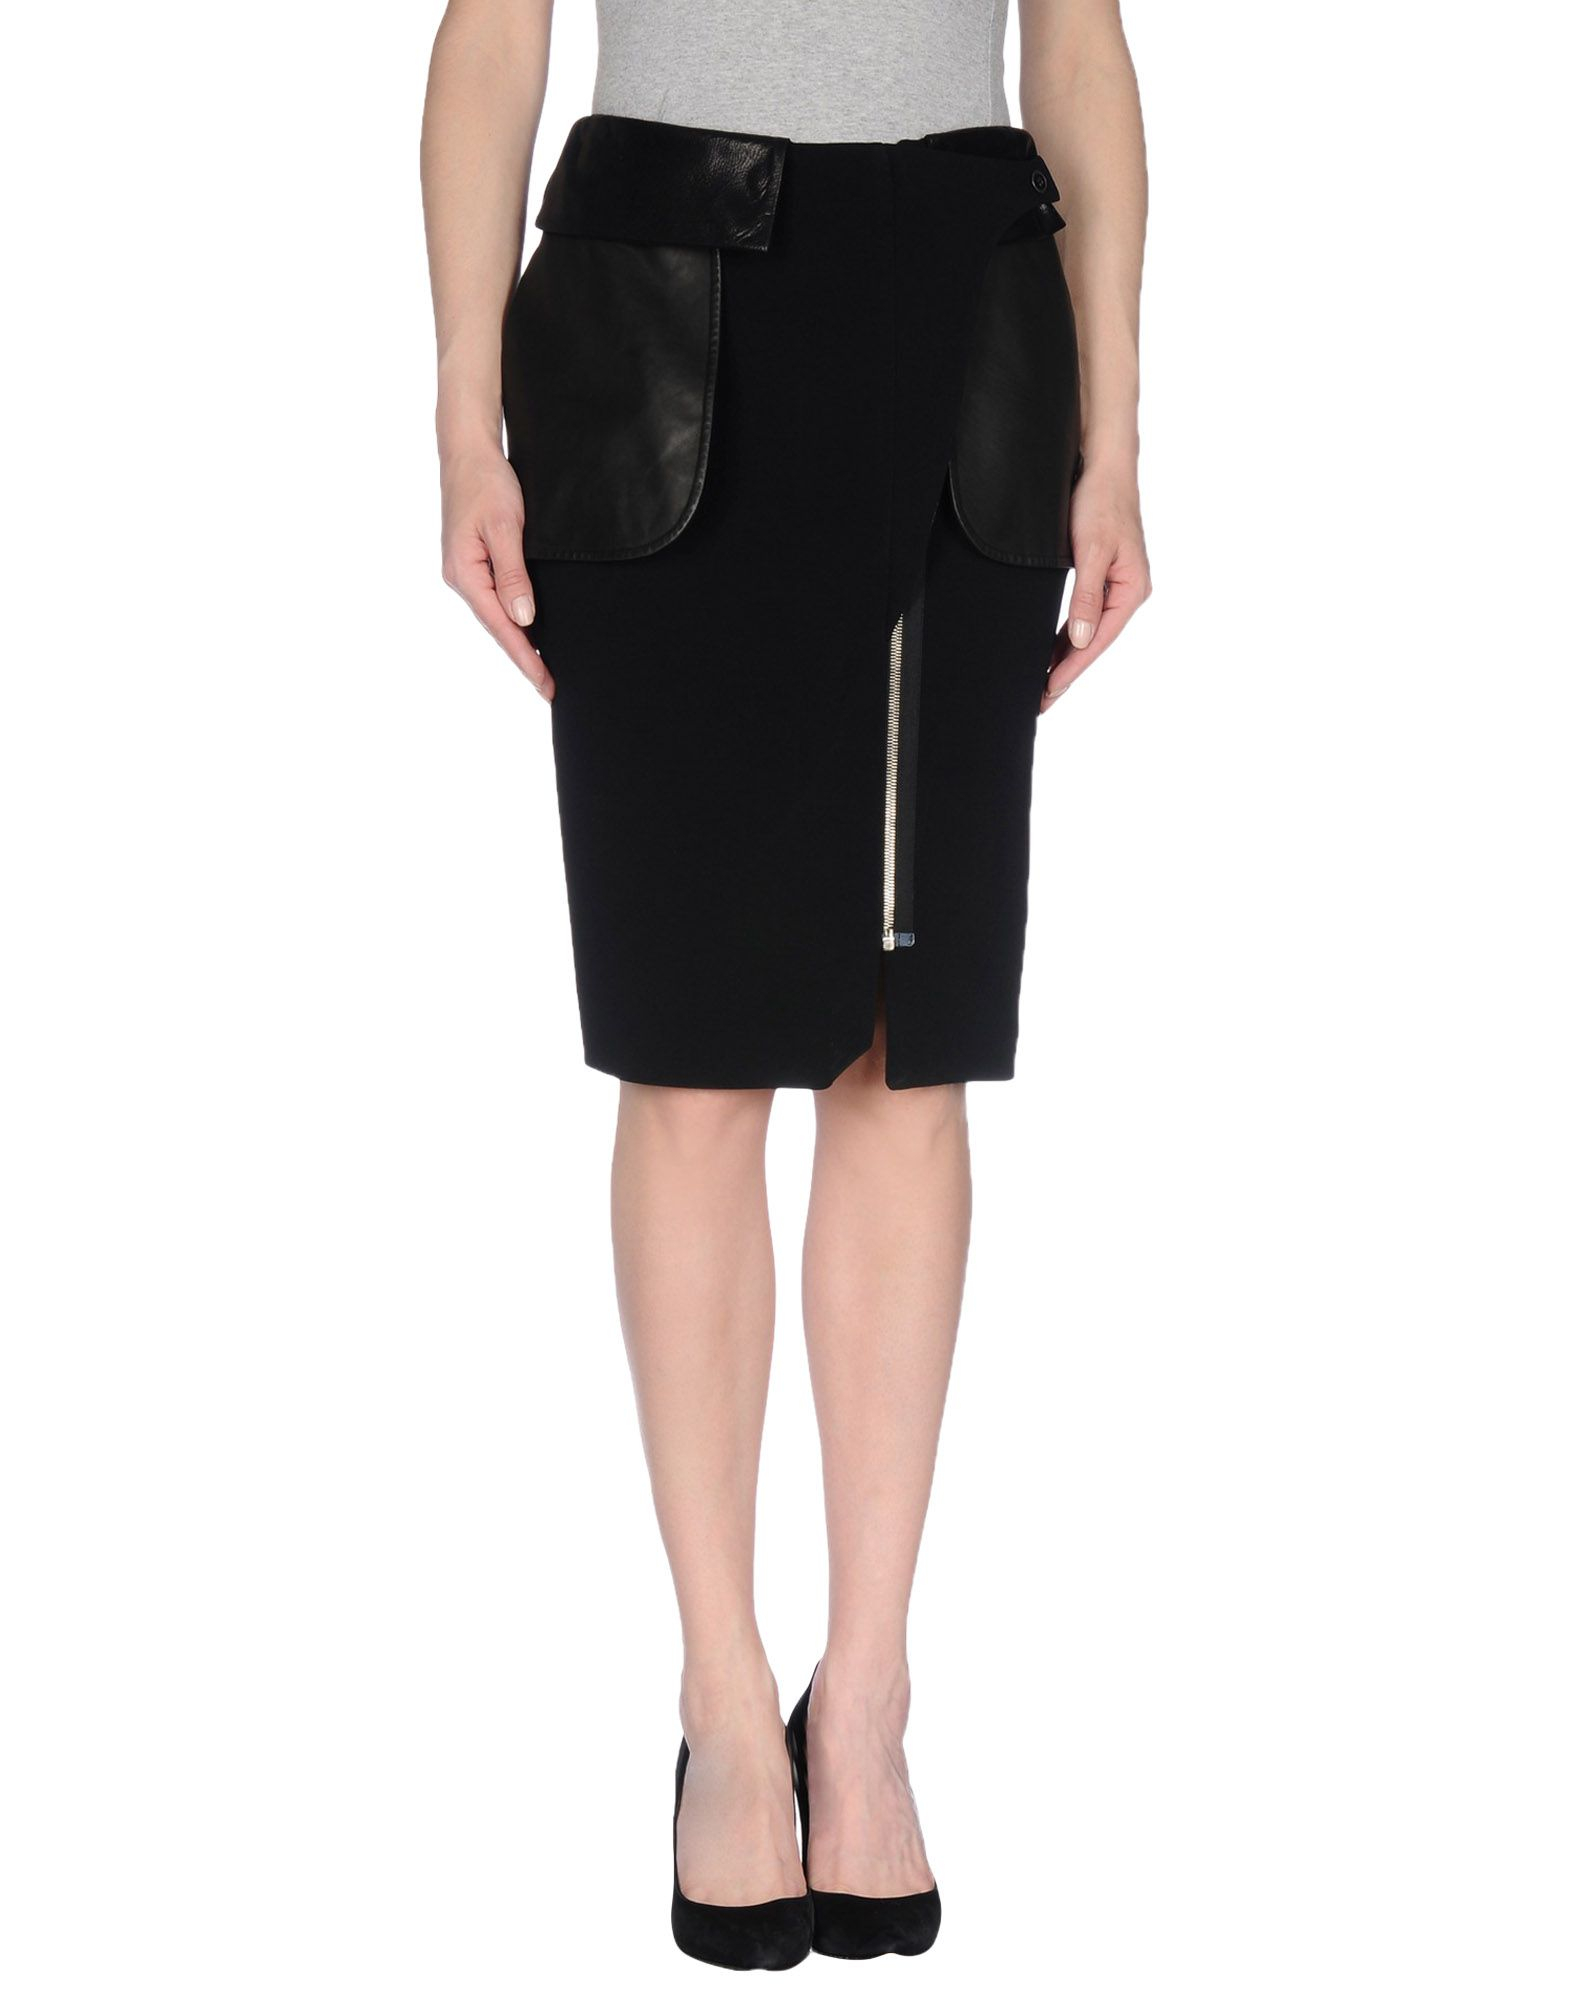 jean paul gaultier knee length skirt in black lyst